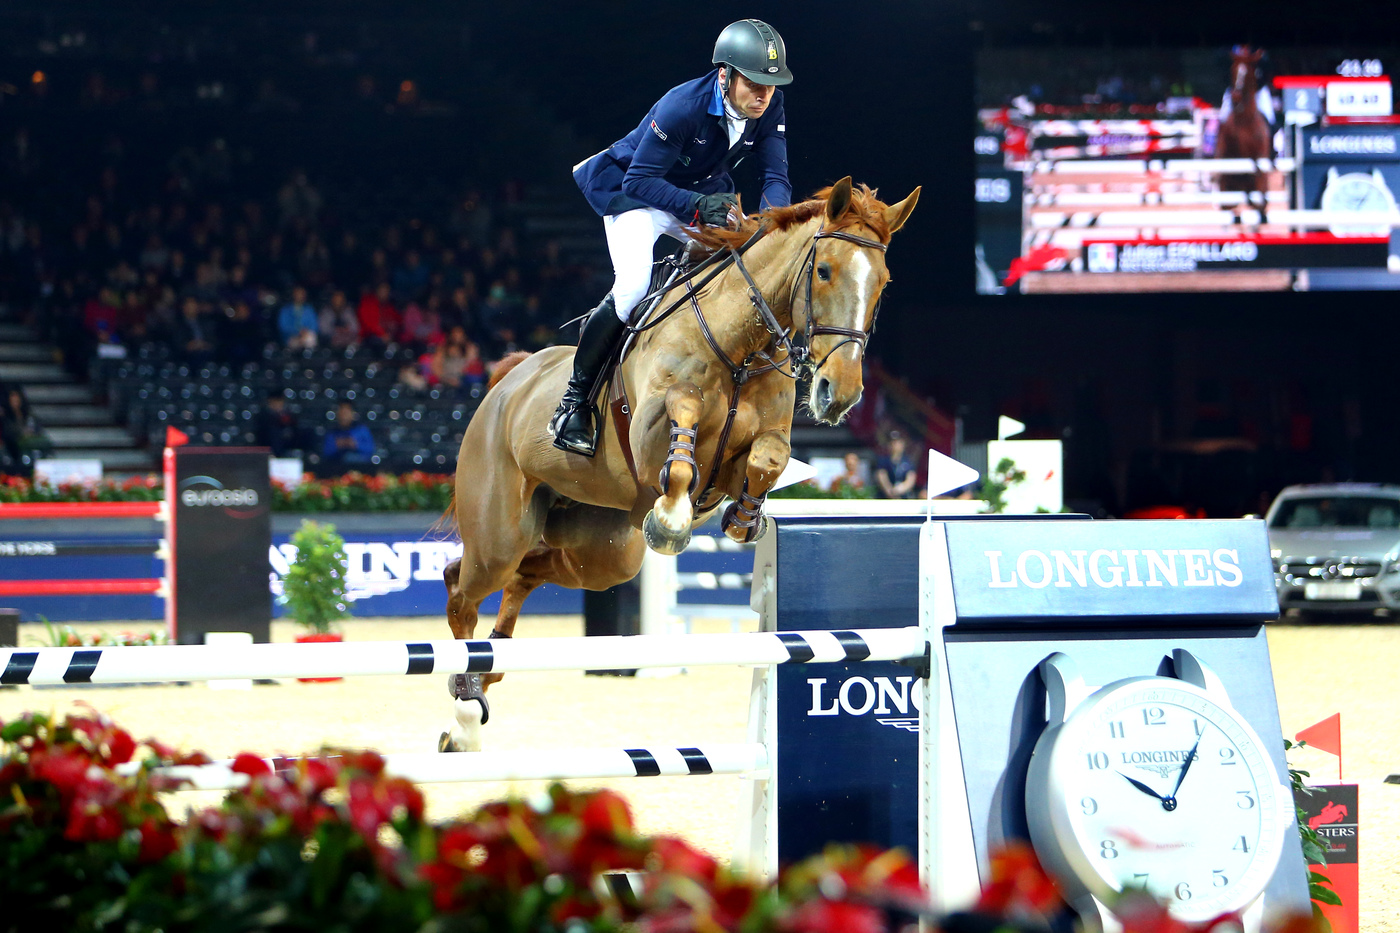 Longines Show Jumping Event: Brilliant moments at the Longines Hong Kong Masters 2014 3